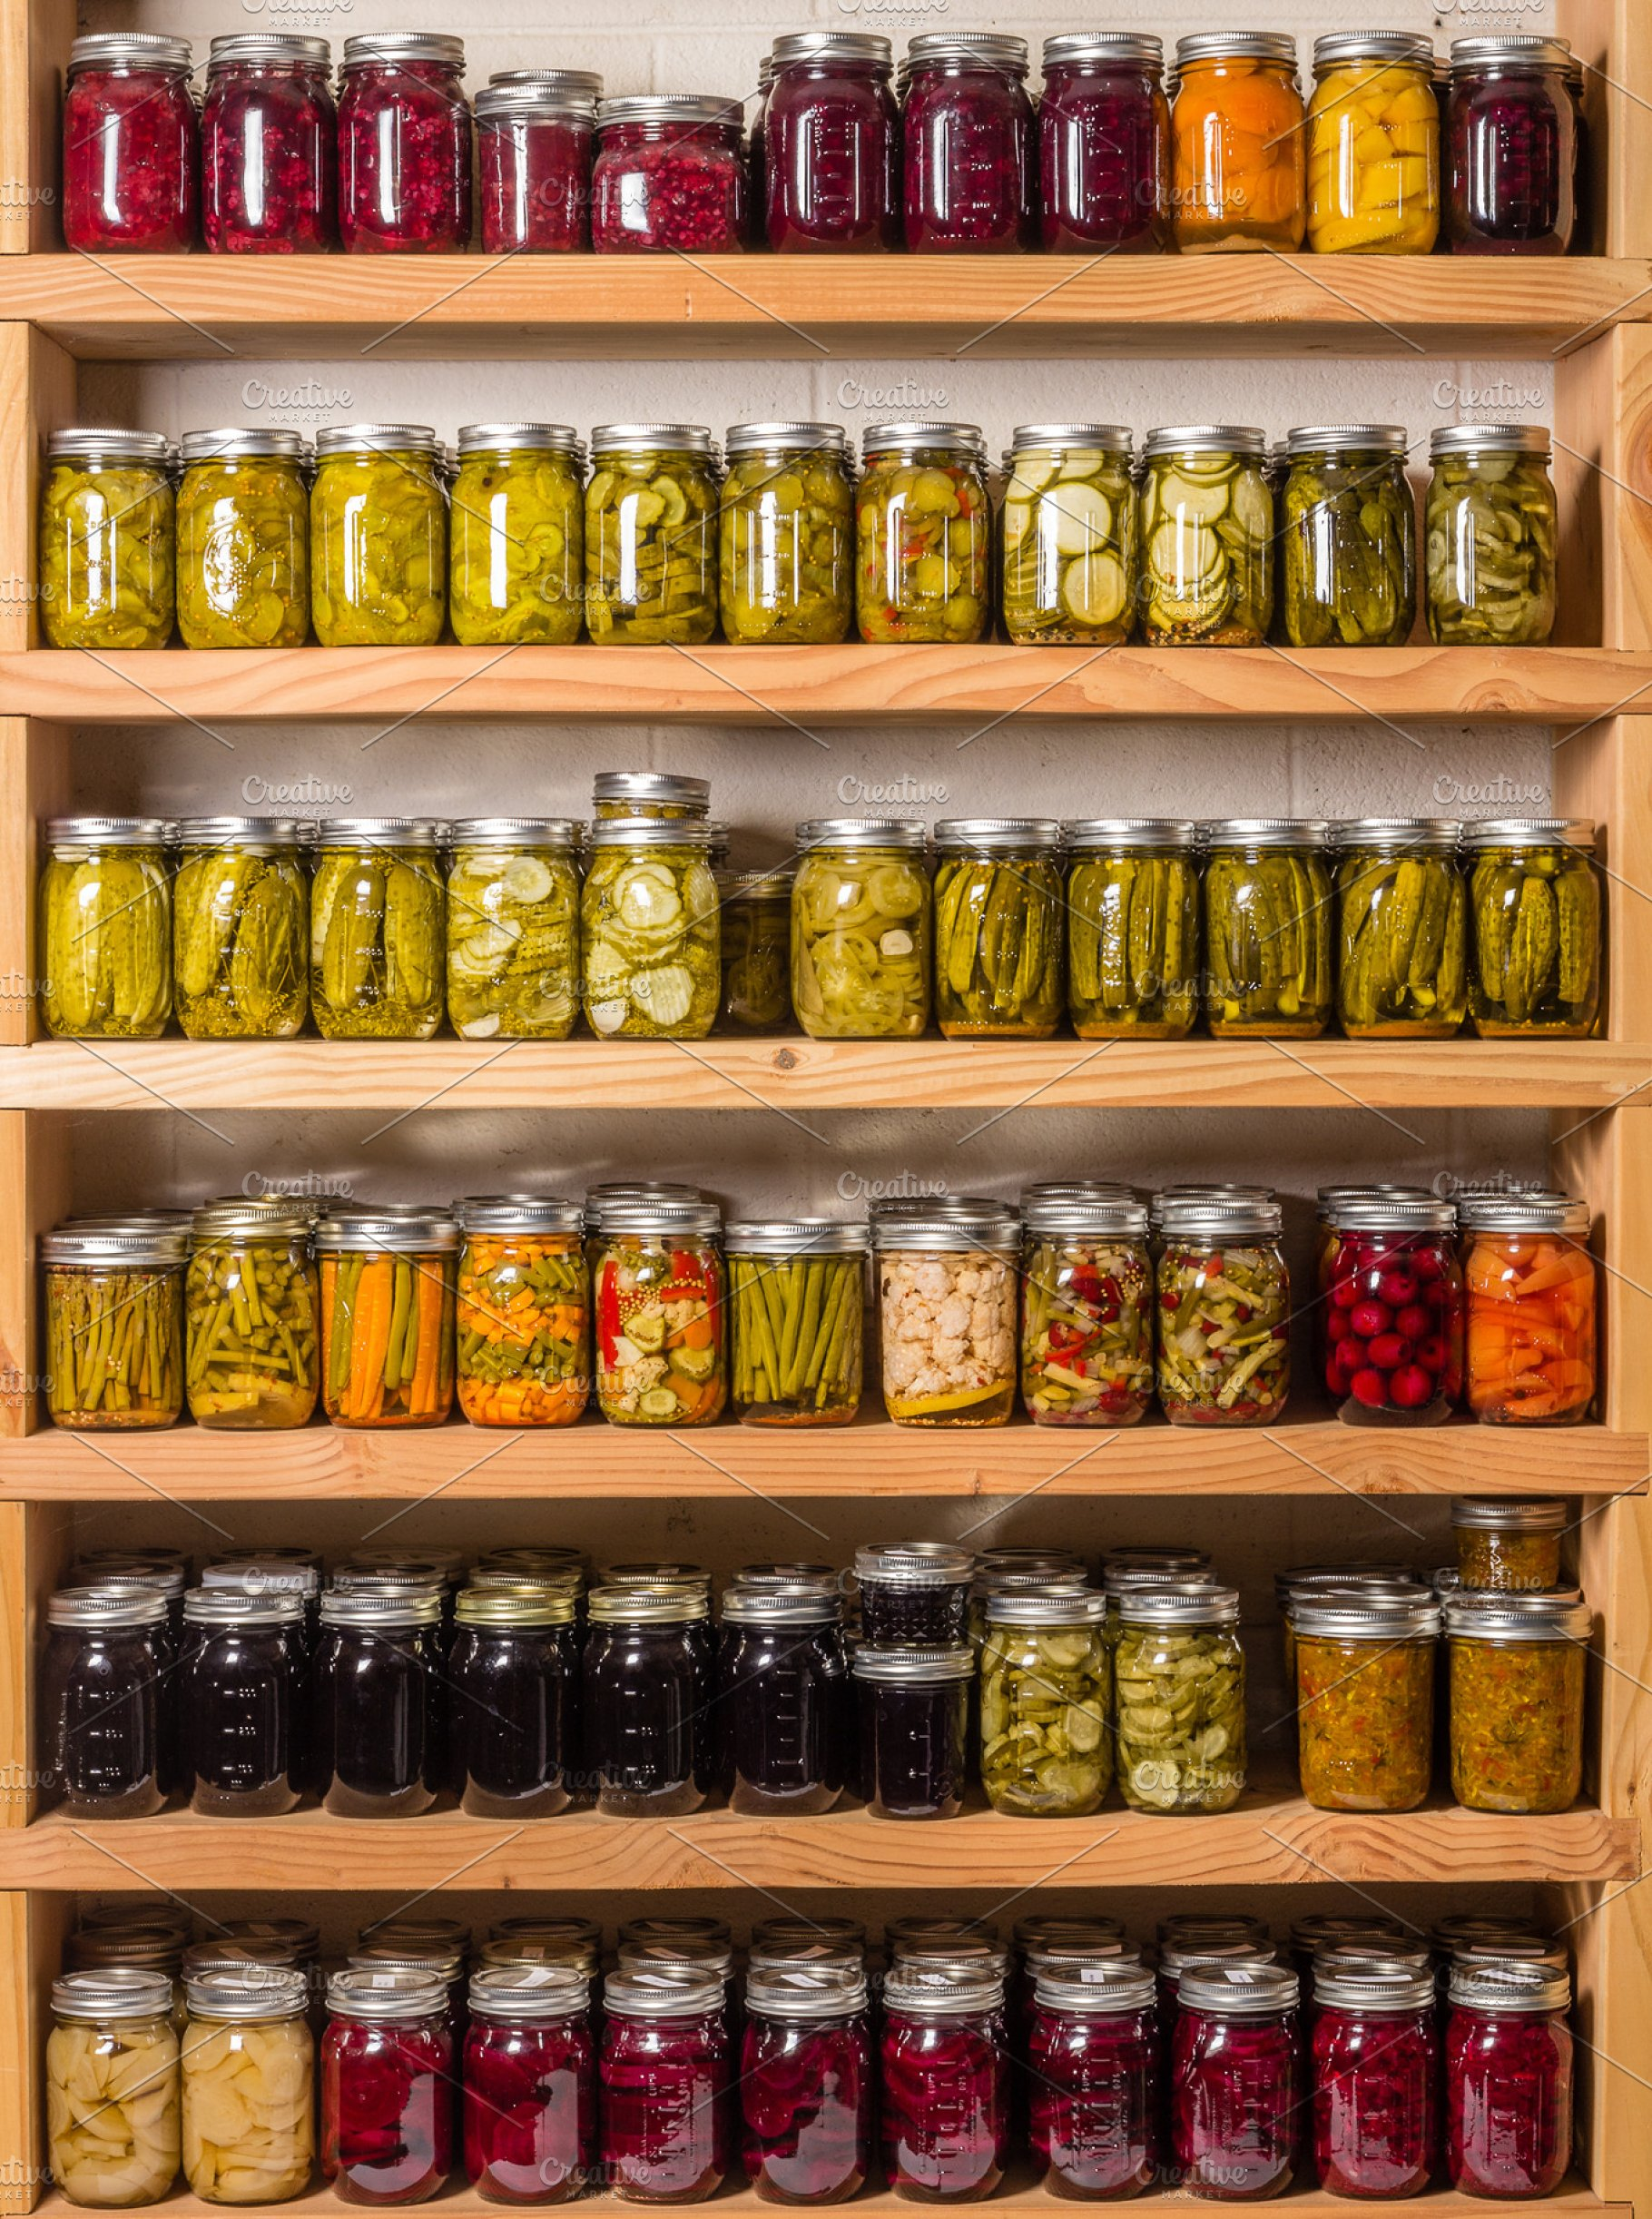 Pantry shelves with jars of food | High-Quality Food Images ...